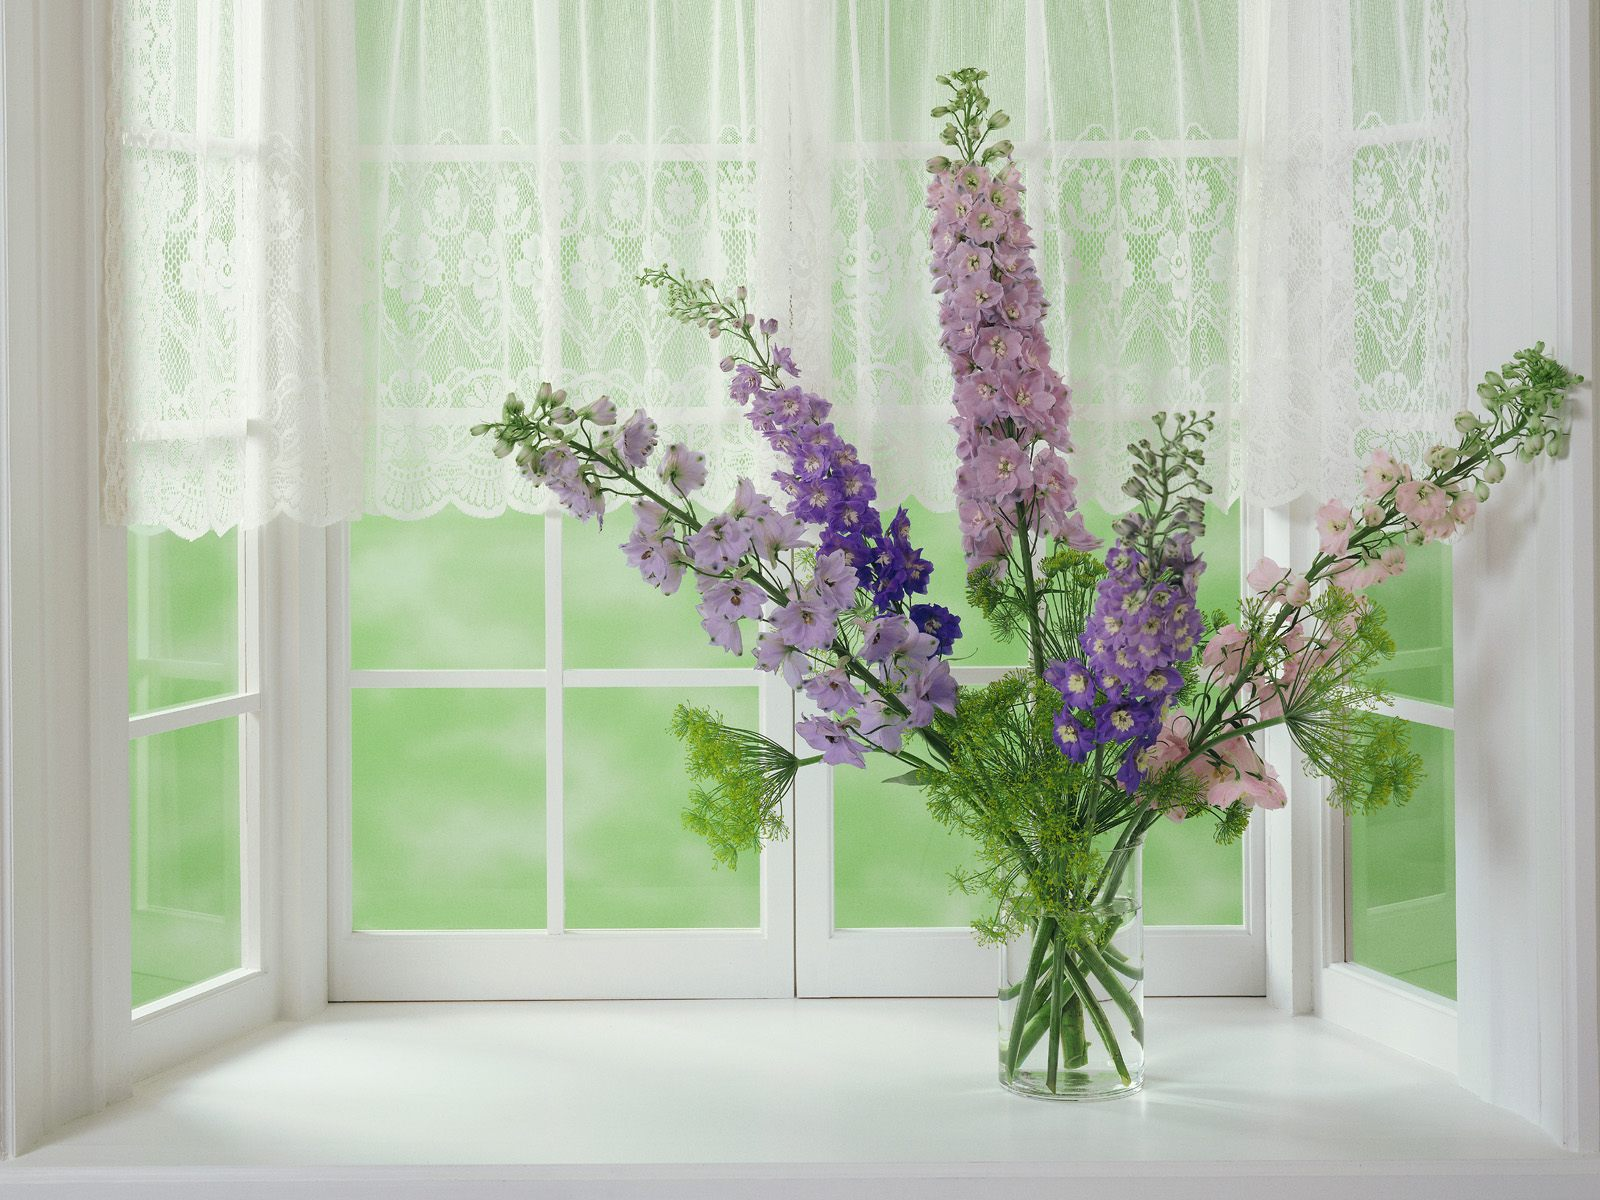 Webshots Wallpapers Flower papers 5345